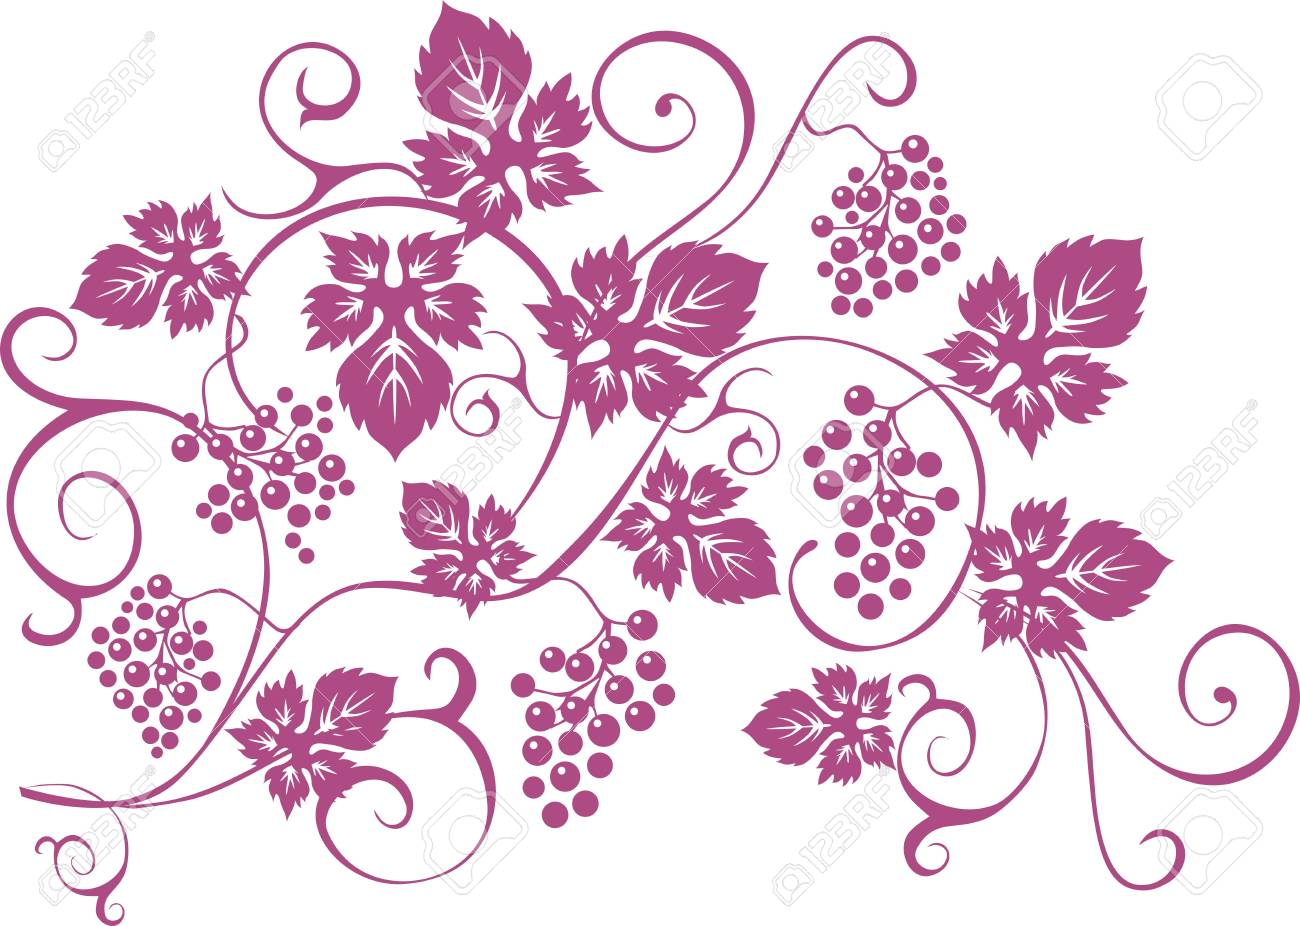 T Shirt Design Elements With Bunches Of Grapes And Vines In